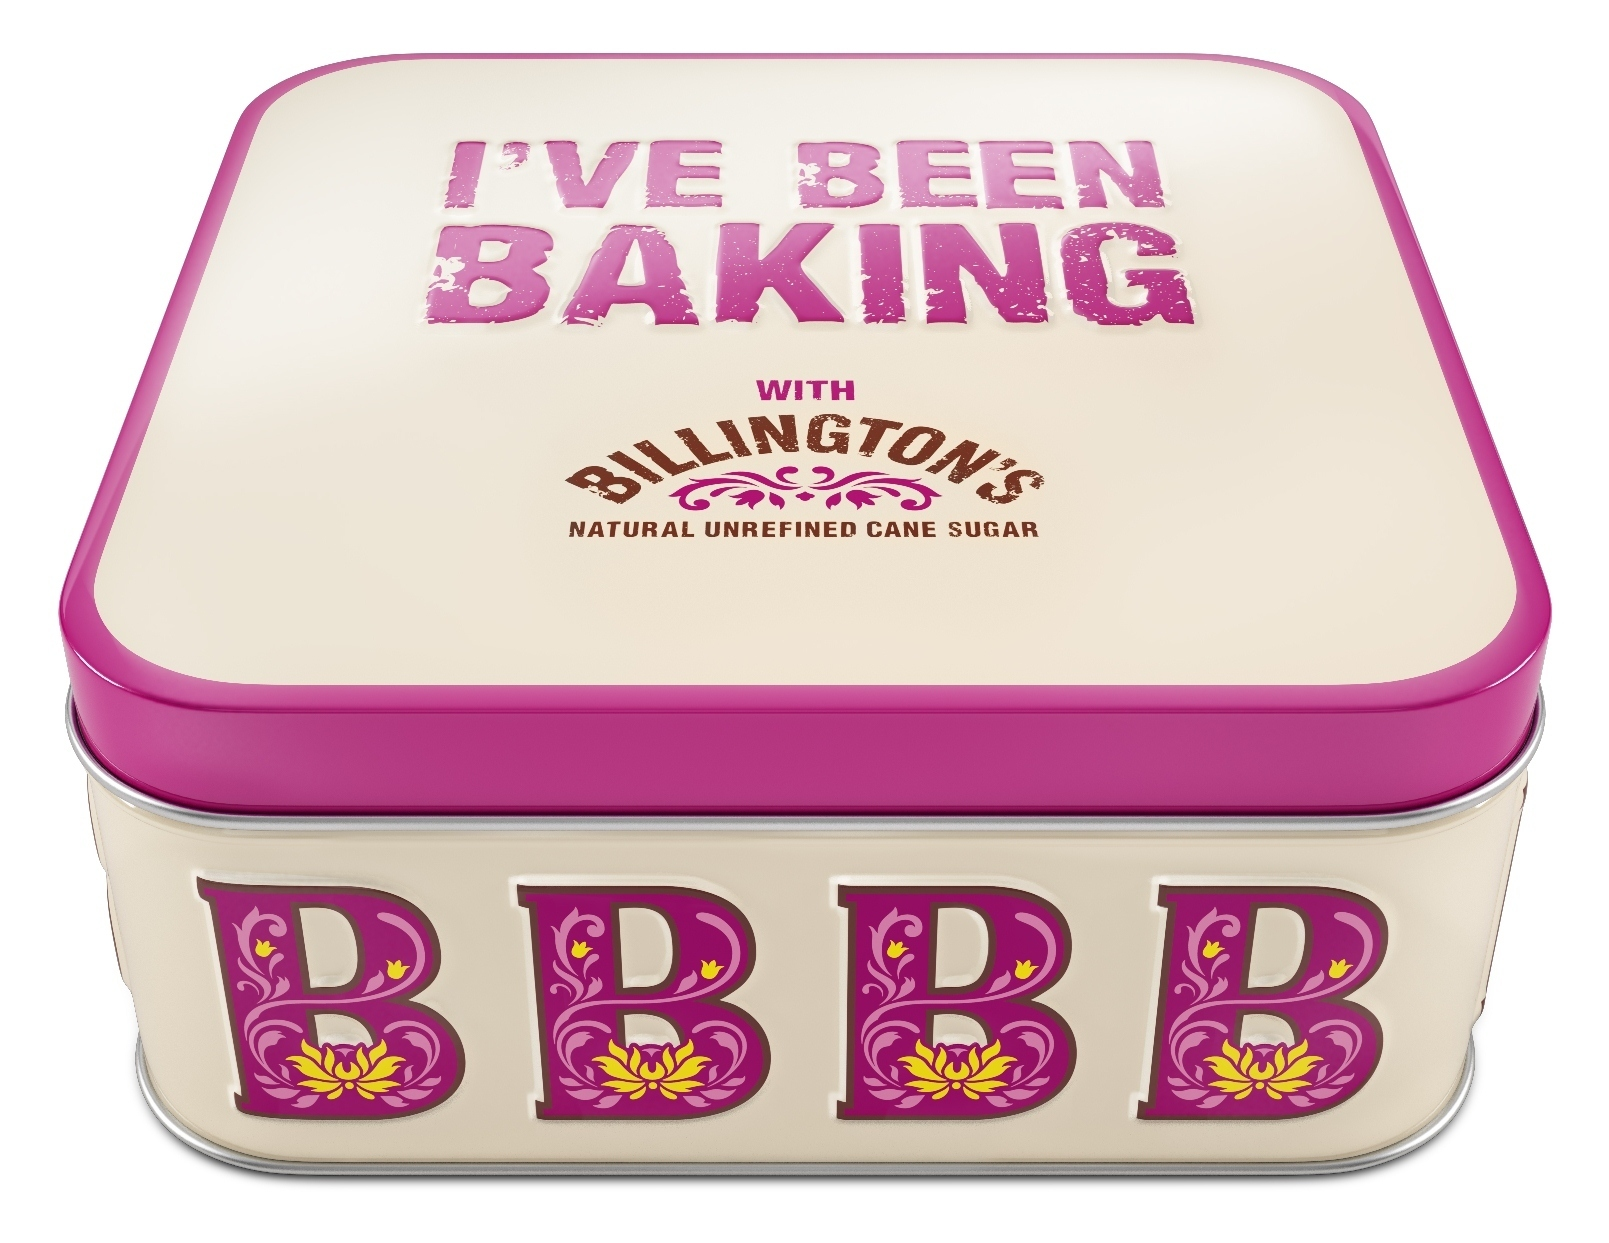 Billington's – free limited edition cake tin